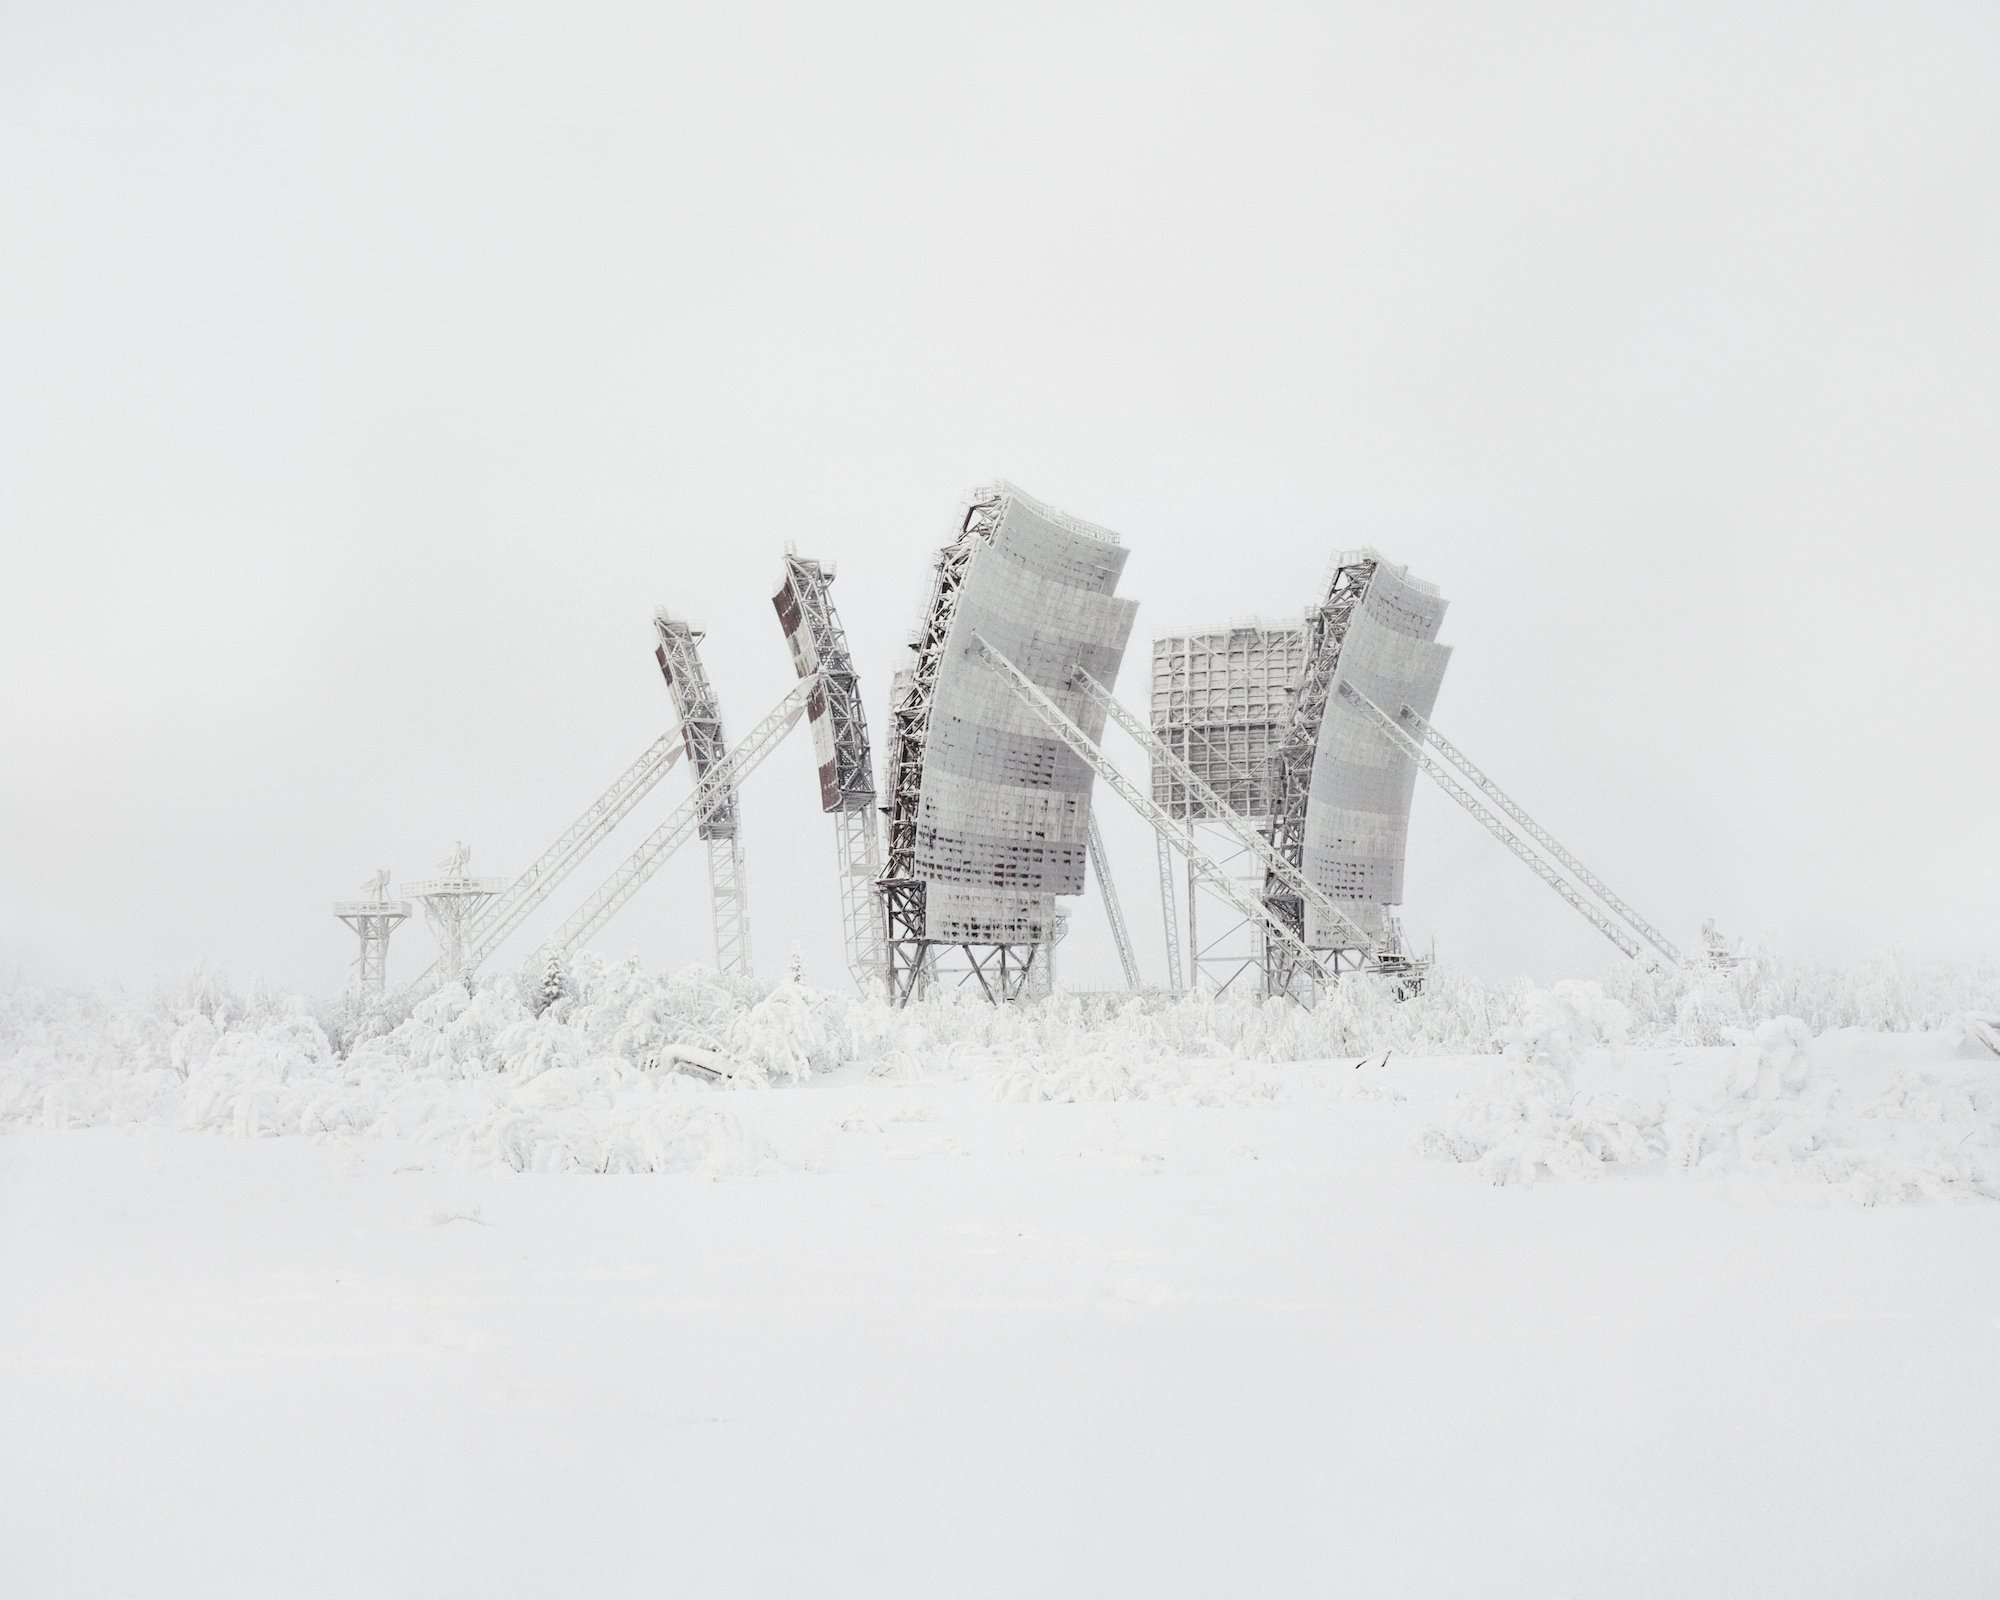 Restricted Areas - Tropospheric antenna in the north of Russia